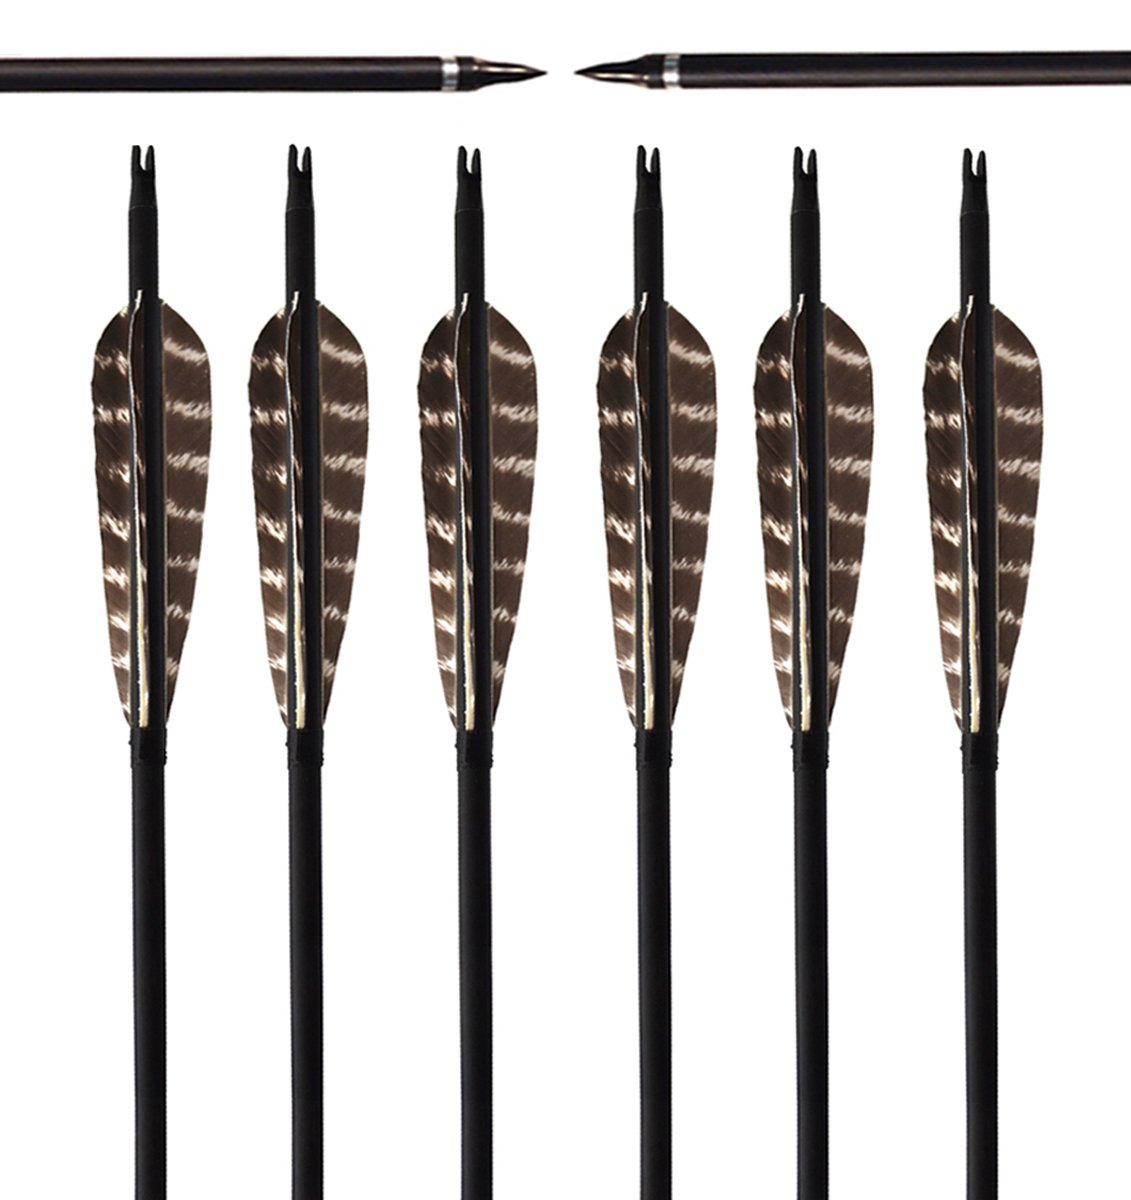 ARCHERY SHARLY [Pack of 6] 31Inch Carbon Targeting Practice Arrows Turkey Feather Fletching Arrows with Removable Tips for Recurve Traditional Long Bow by ARCHERY SHARLY